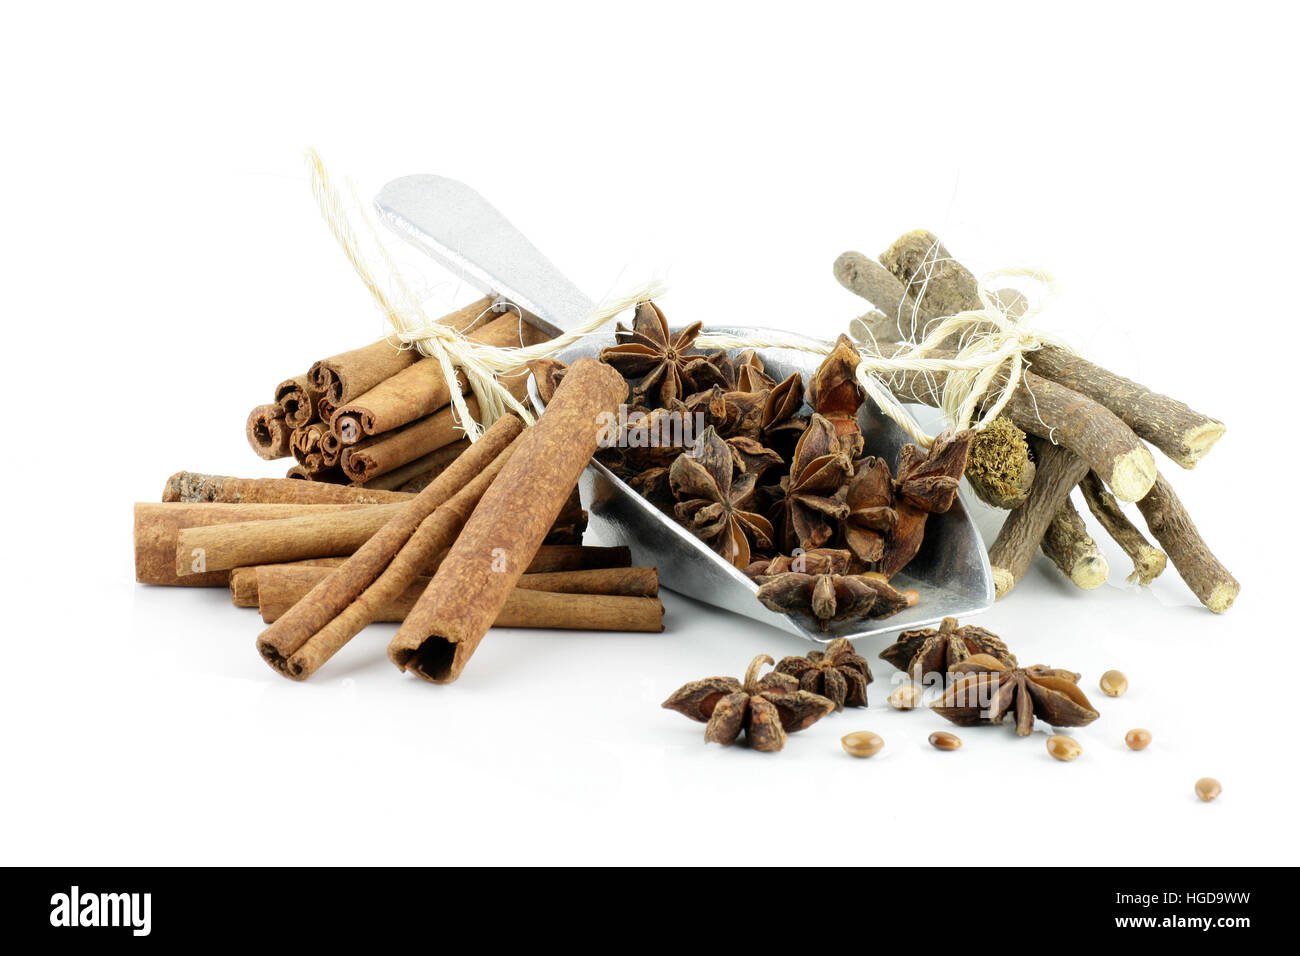 Star anise in an aluminium grocery scoop with cinnamon sticks and liquorice root. - Stock Image